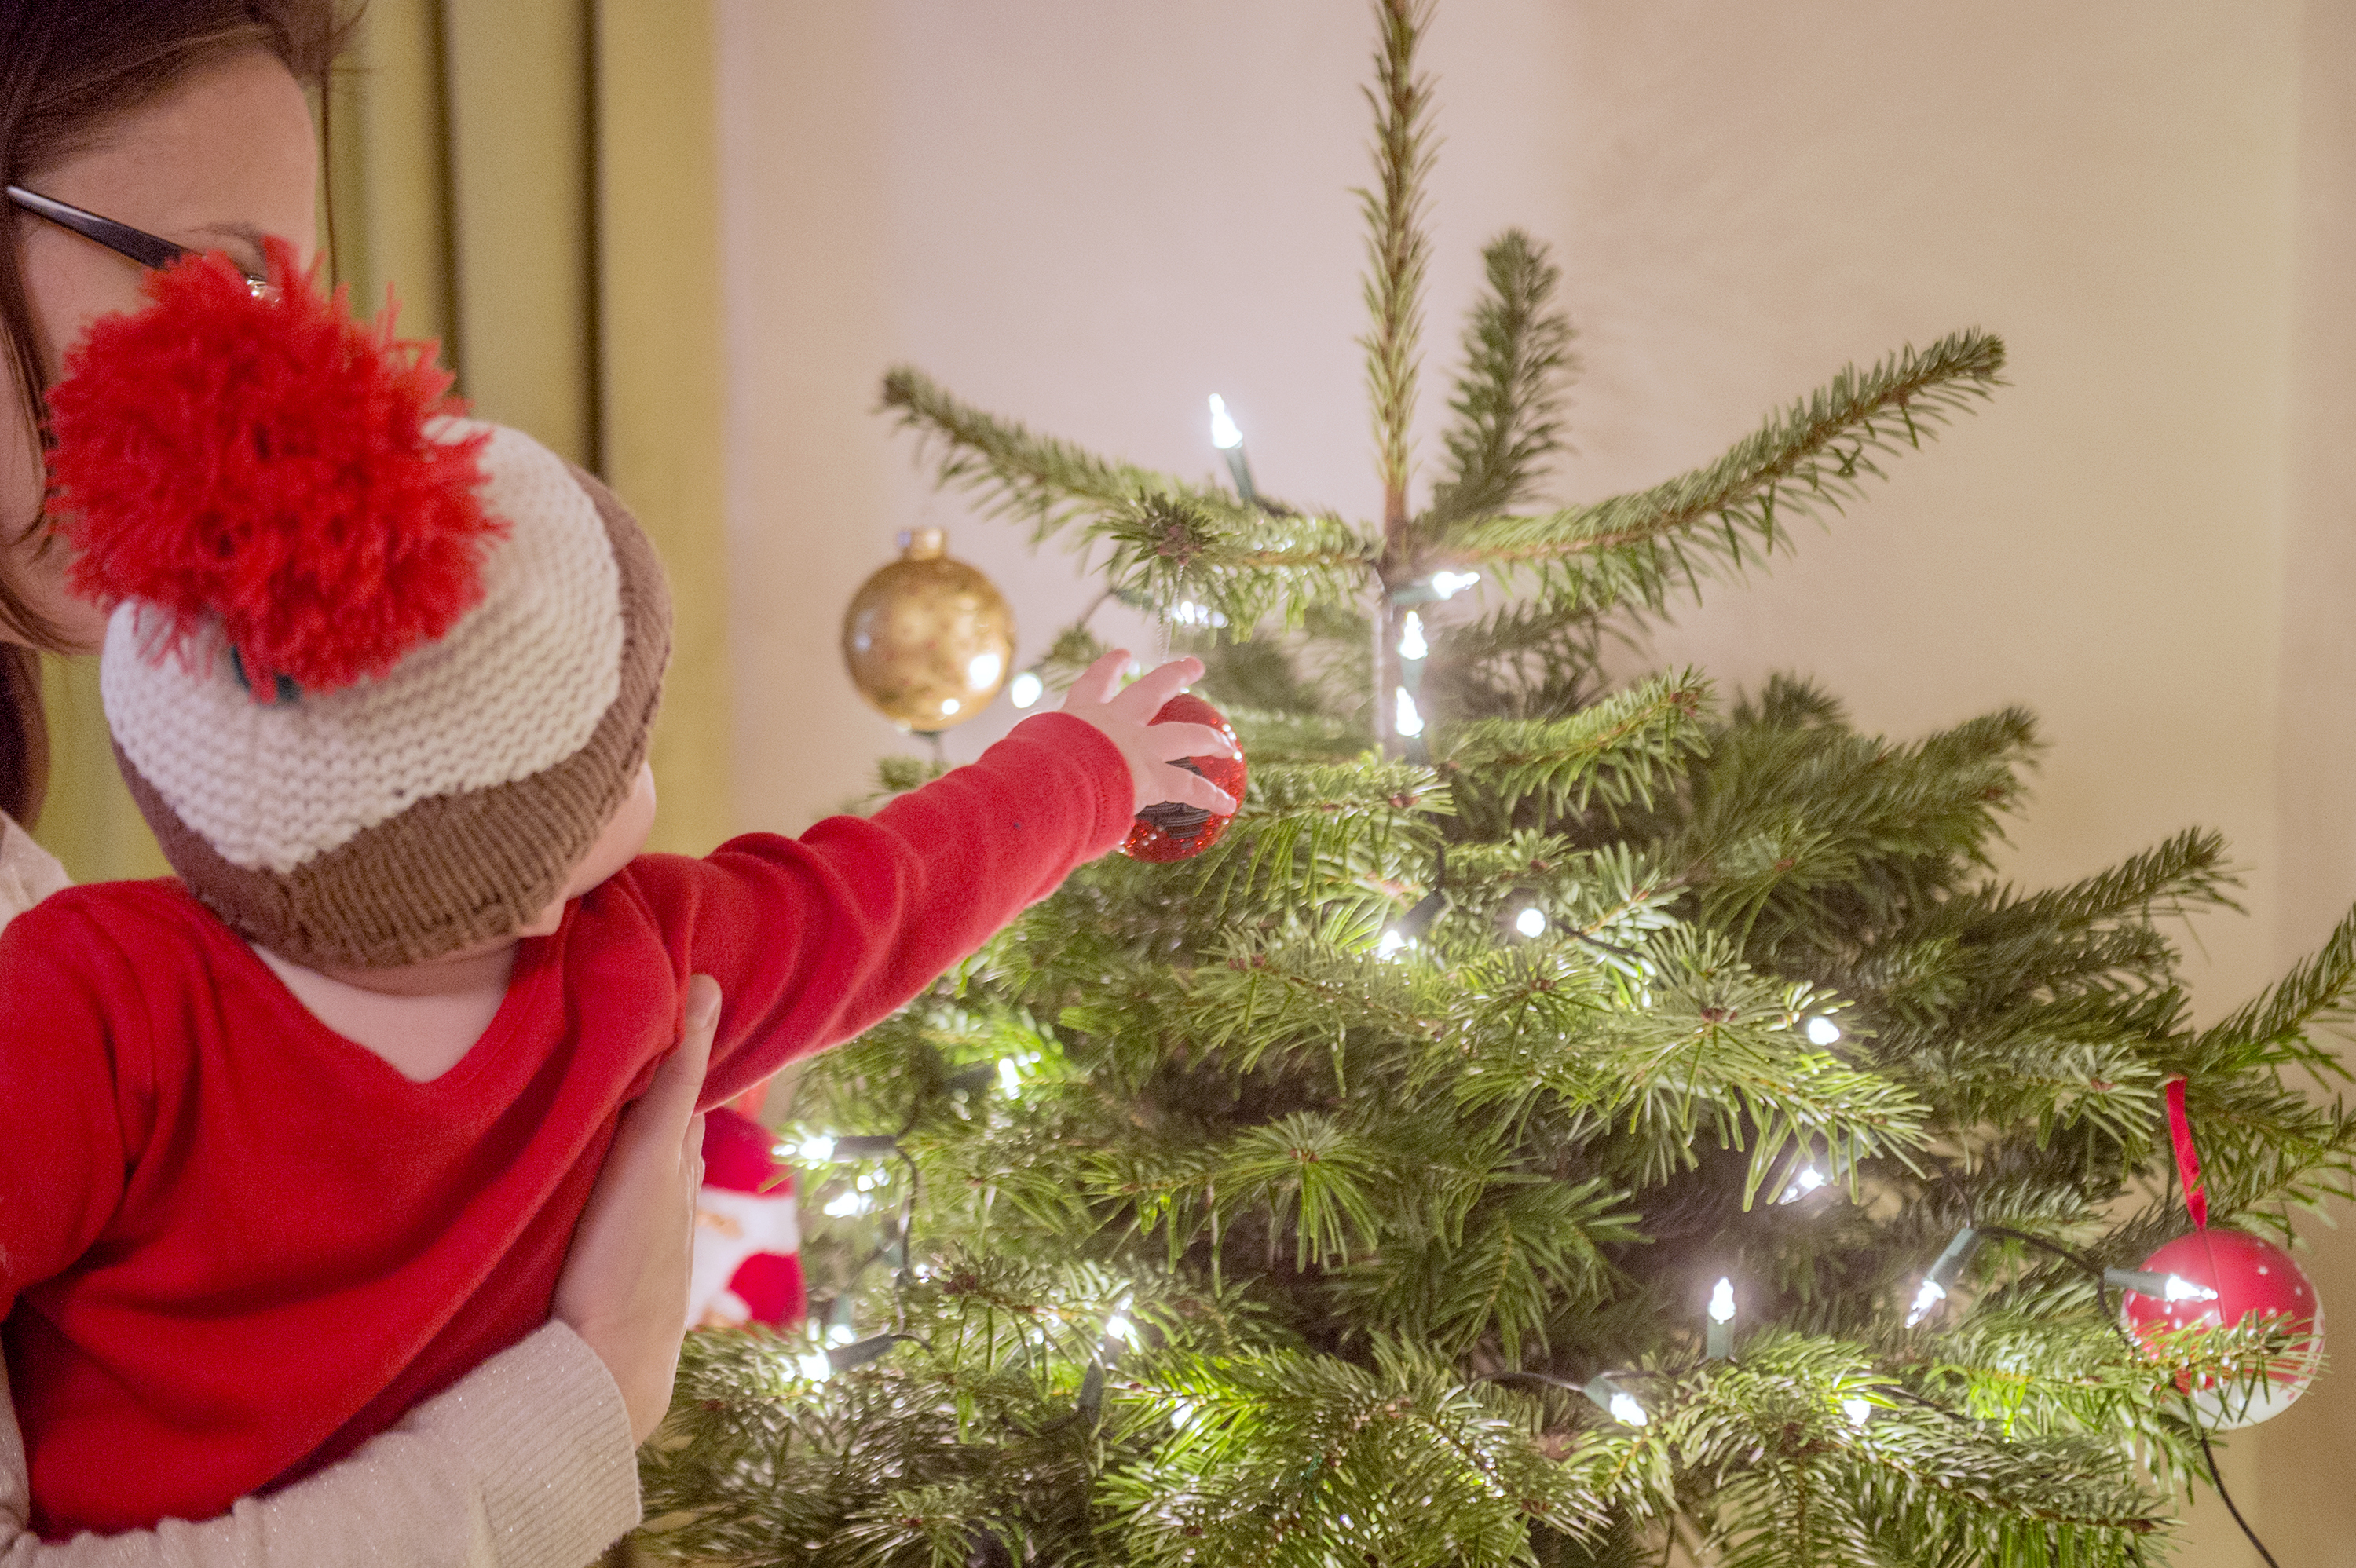 A young child touches a bauble on a Christmas tree